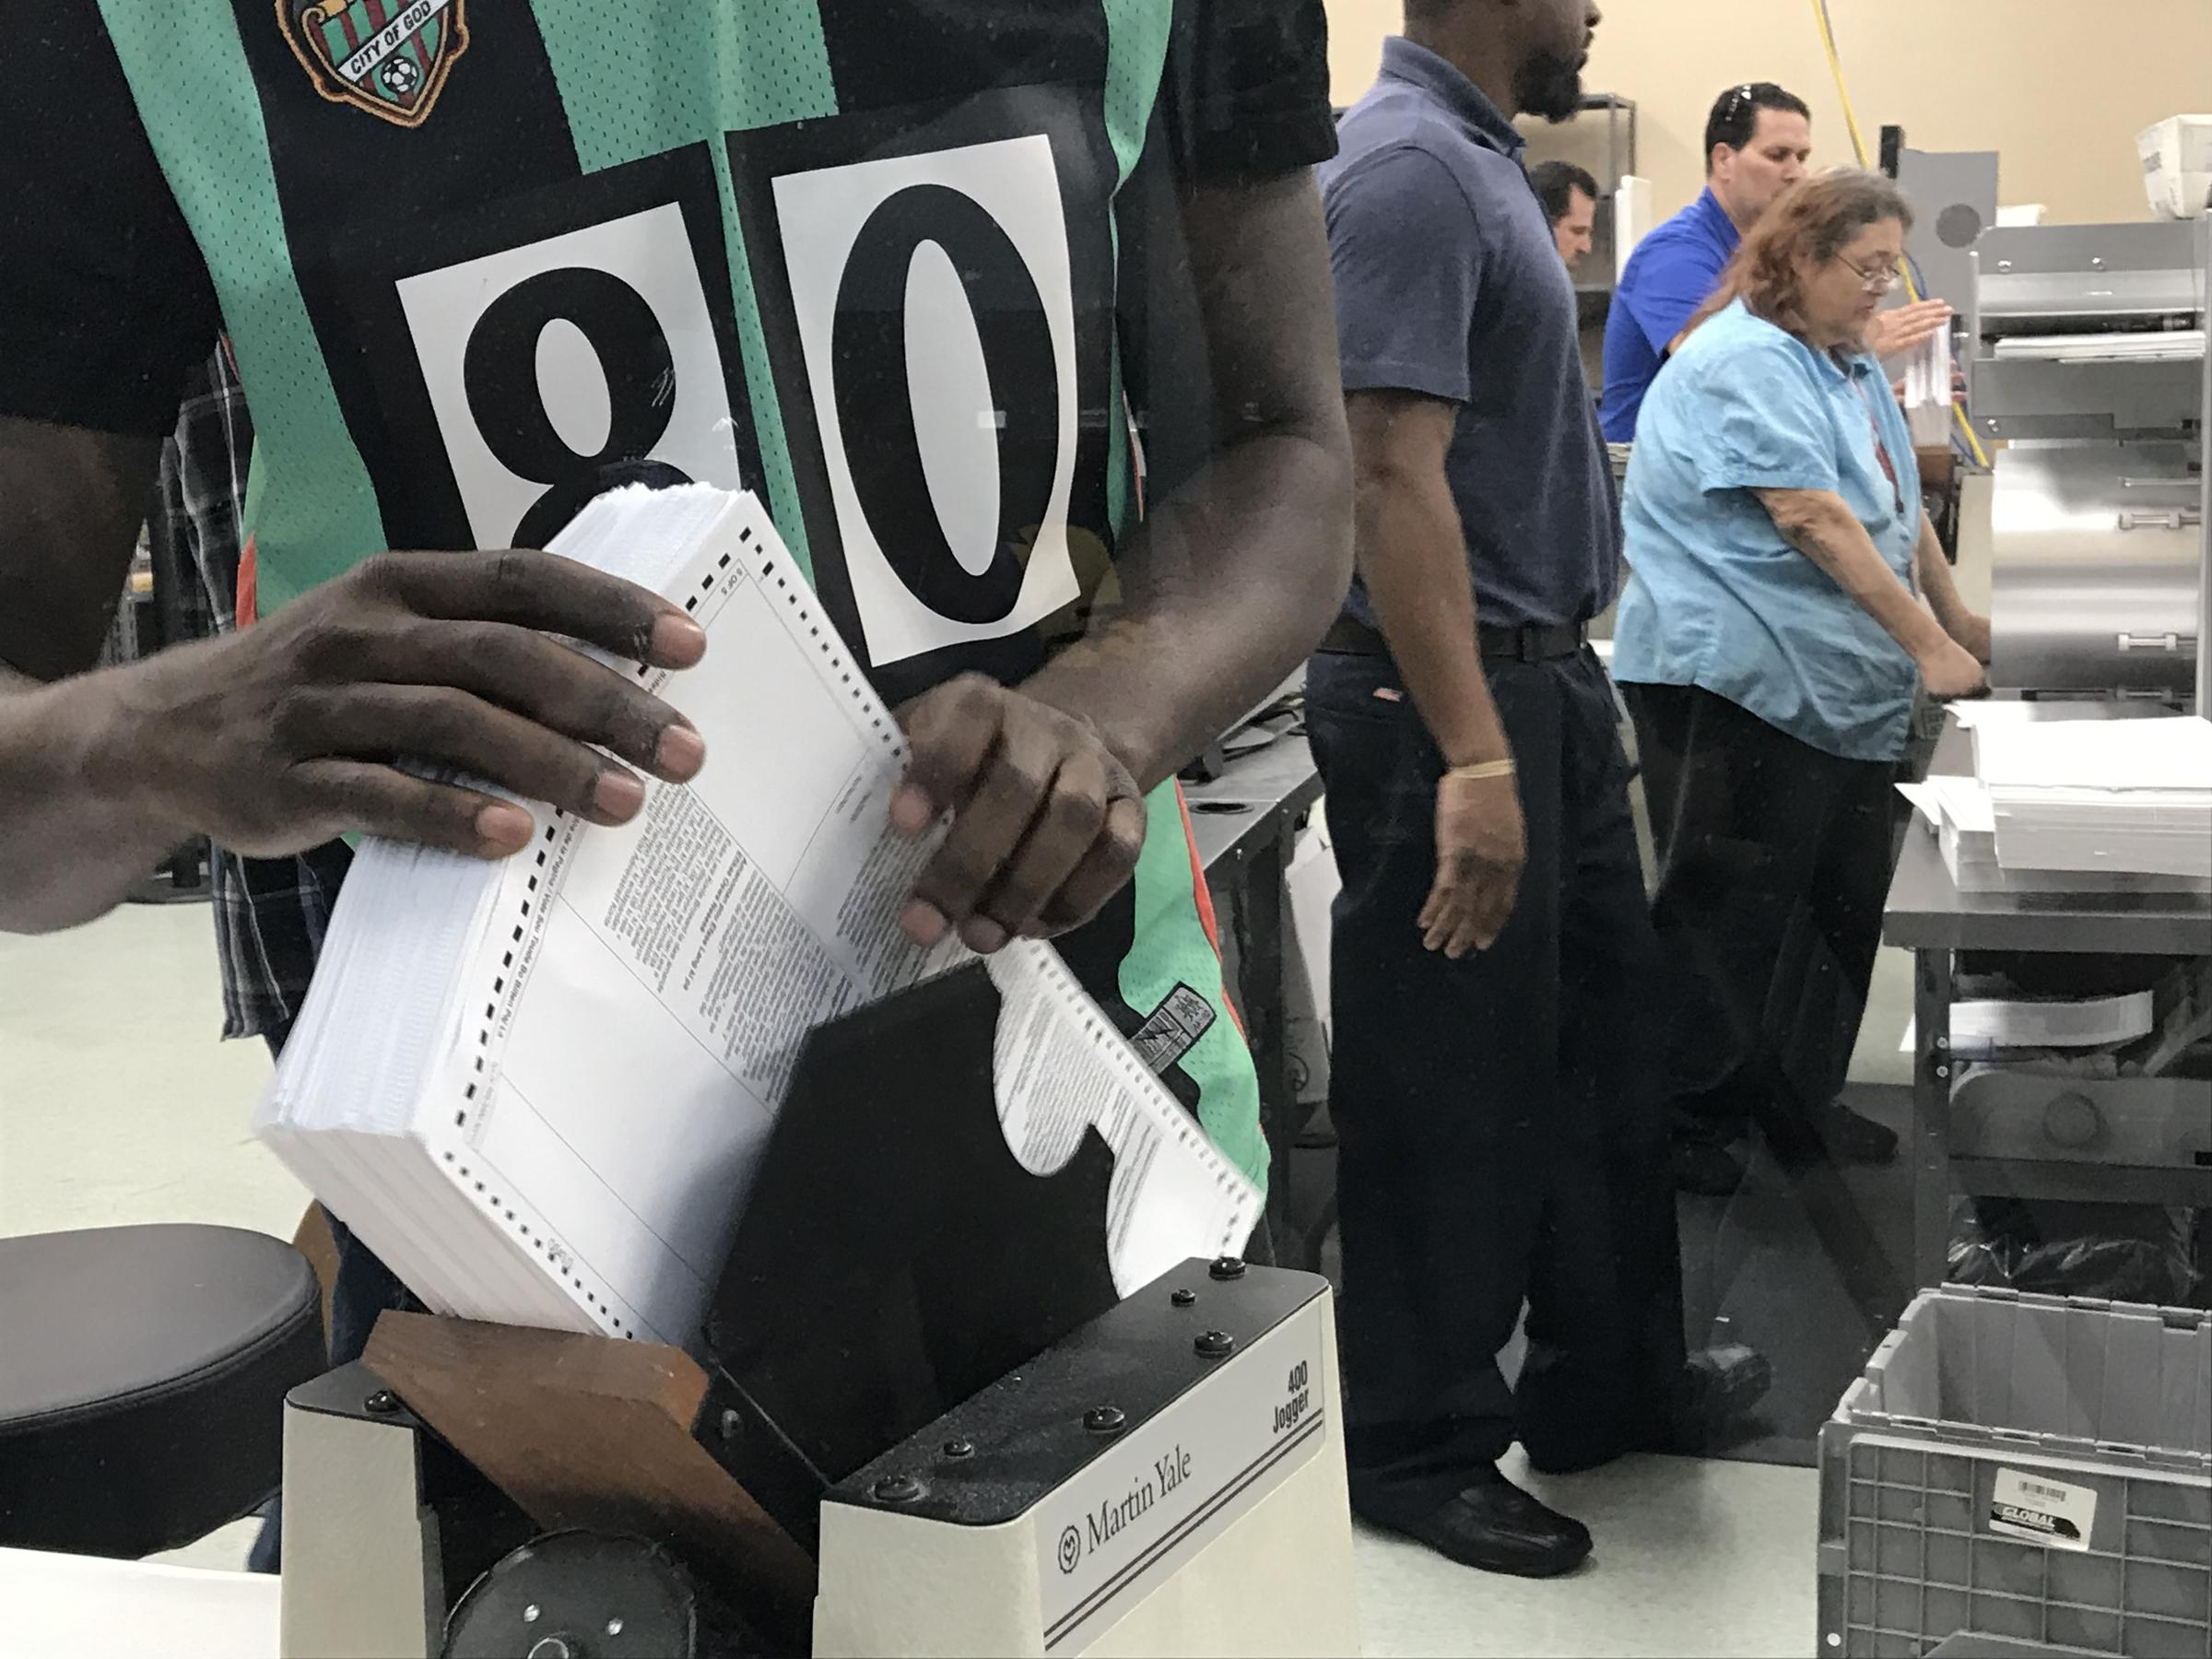 expert how ballot design could impact broward county election